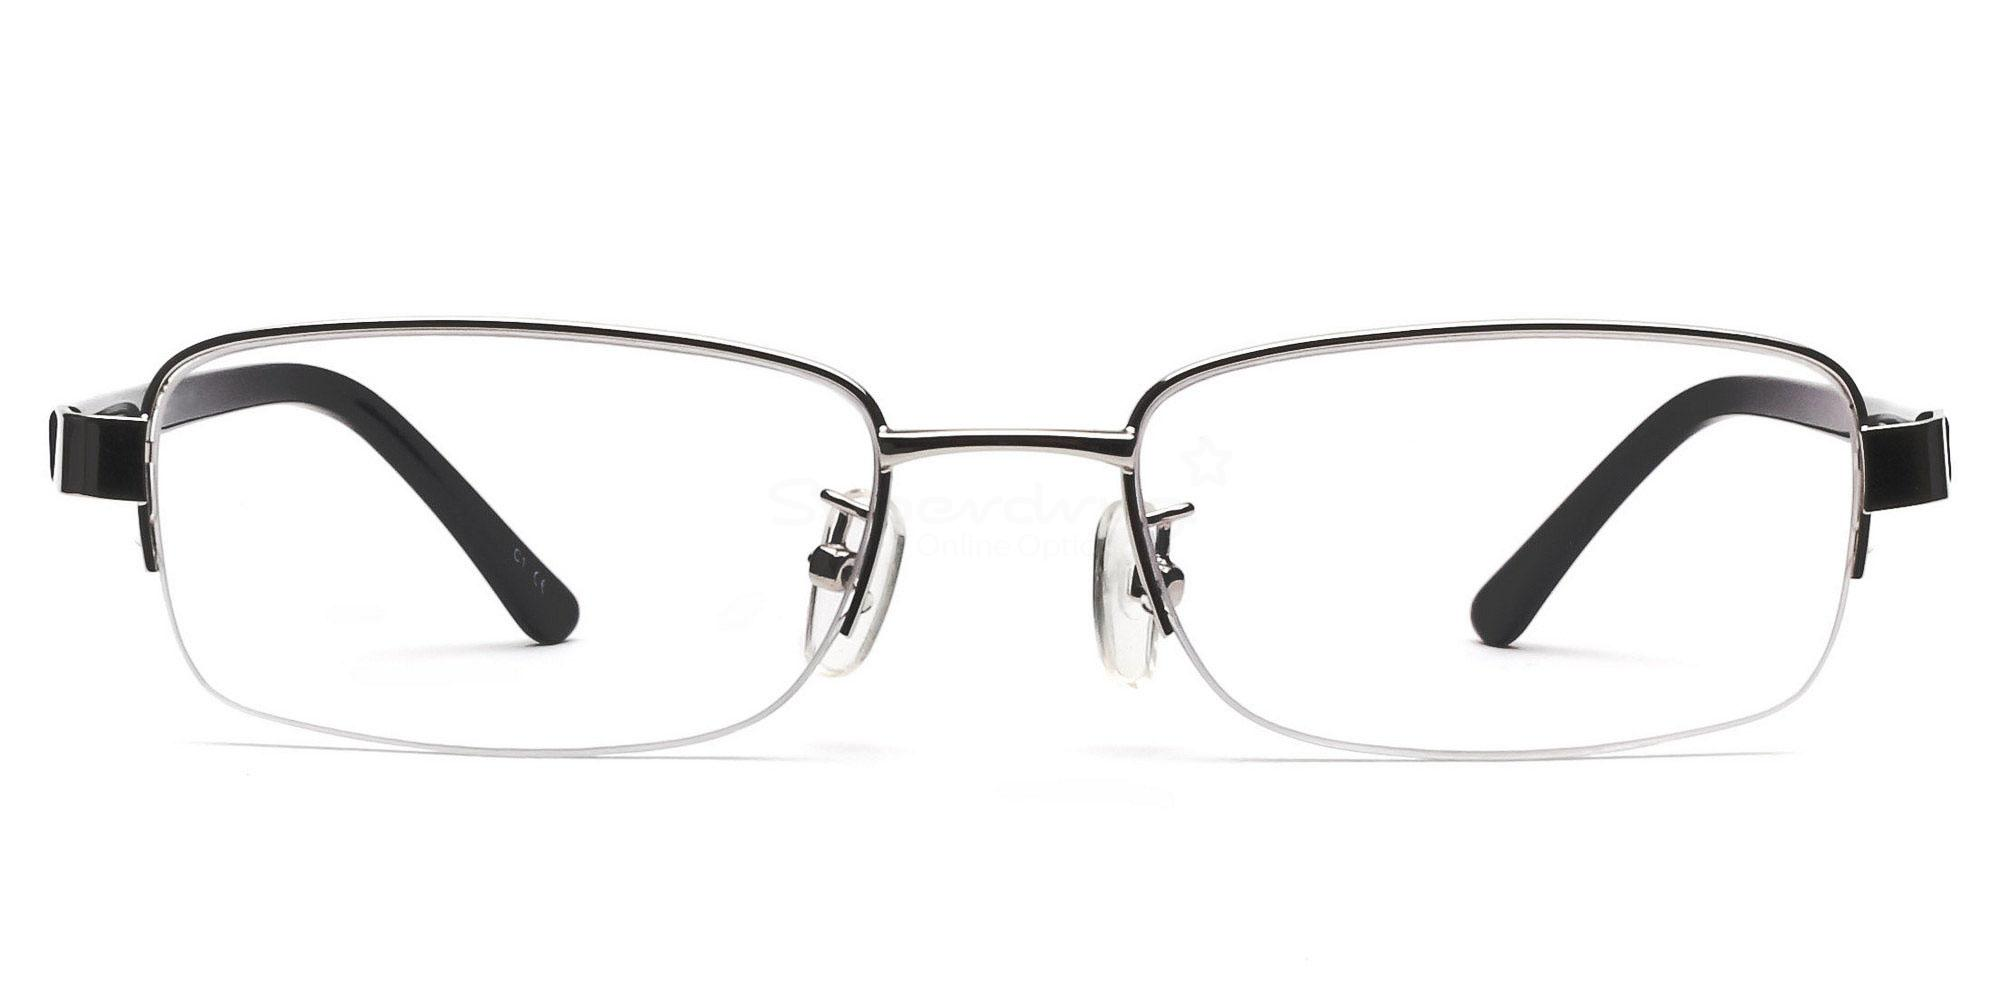 Silver 6212 - Silver Glasses, Indium